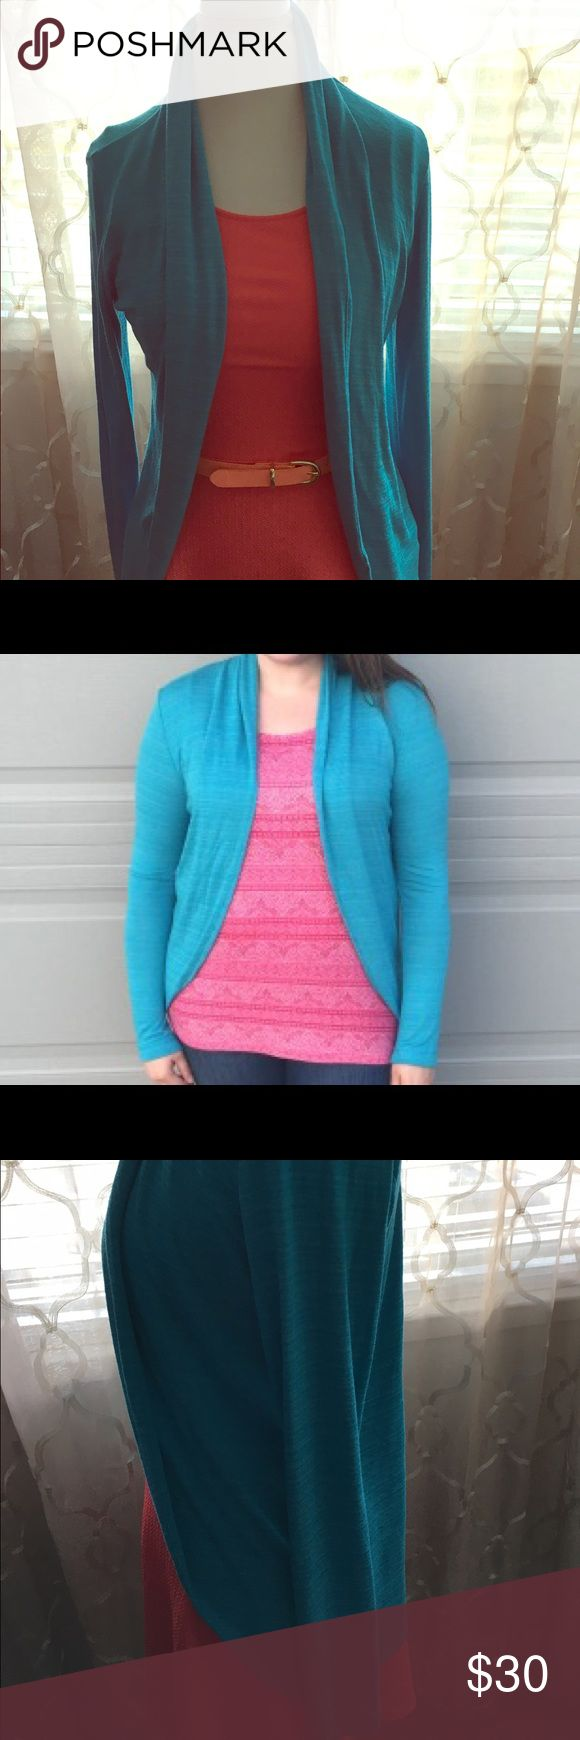 Laila Jayde Turquoise cardigan It's brand new without tags. It retails for $48 at Nordstrom Rack laila jayde Sweaters Cardigans